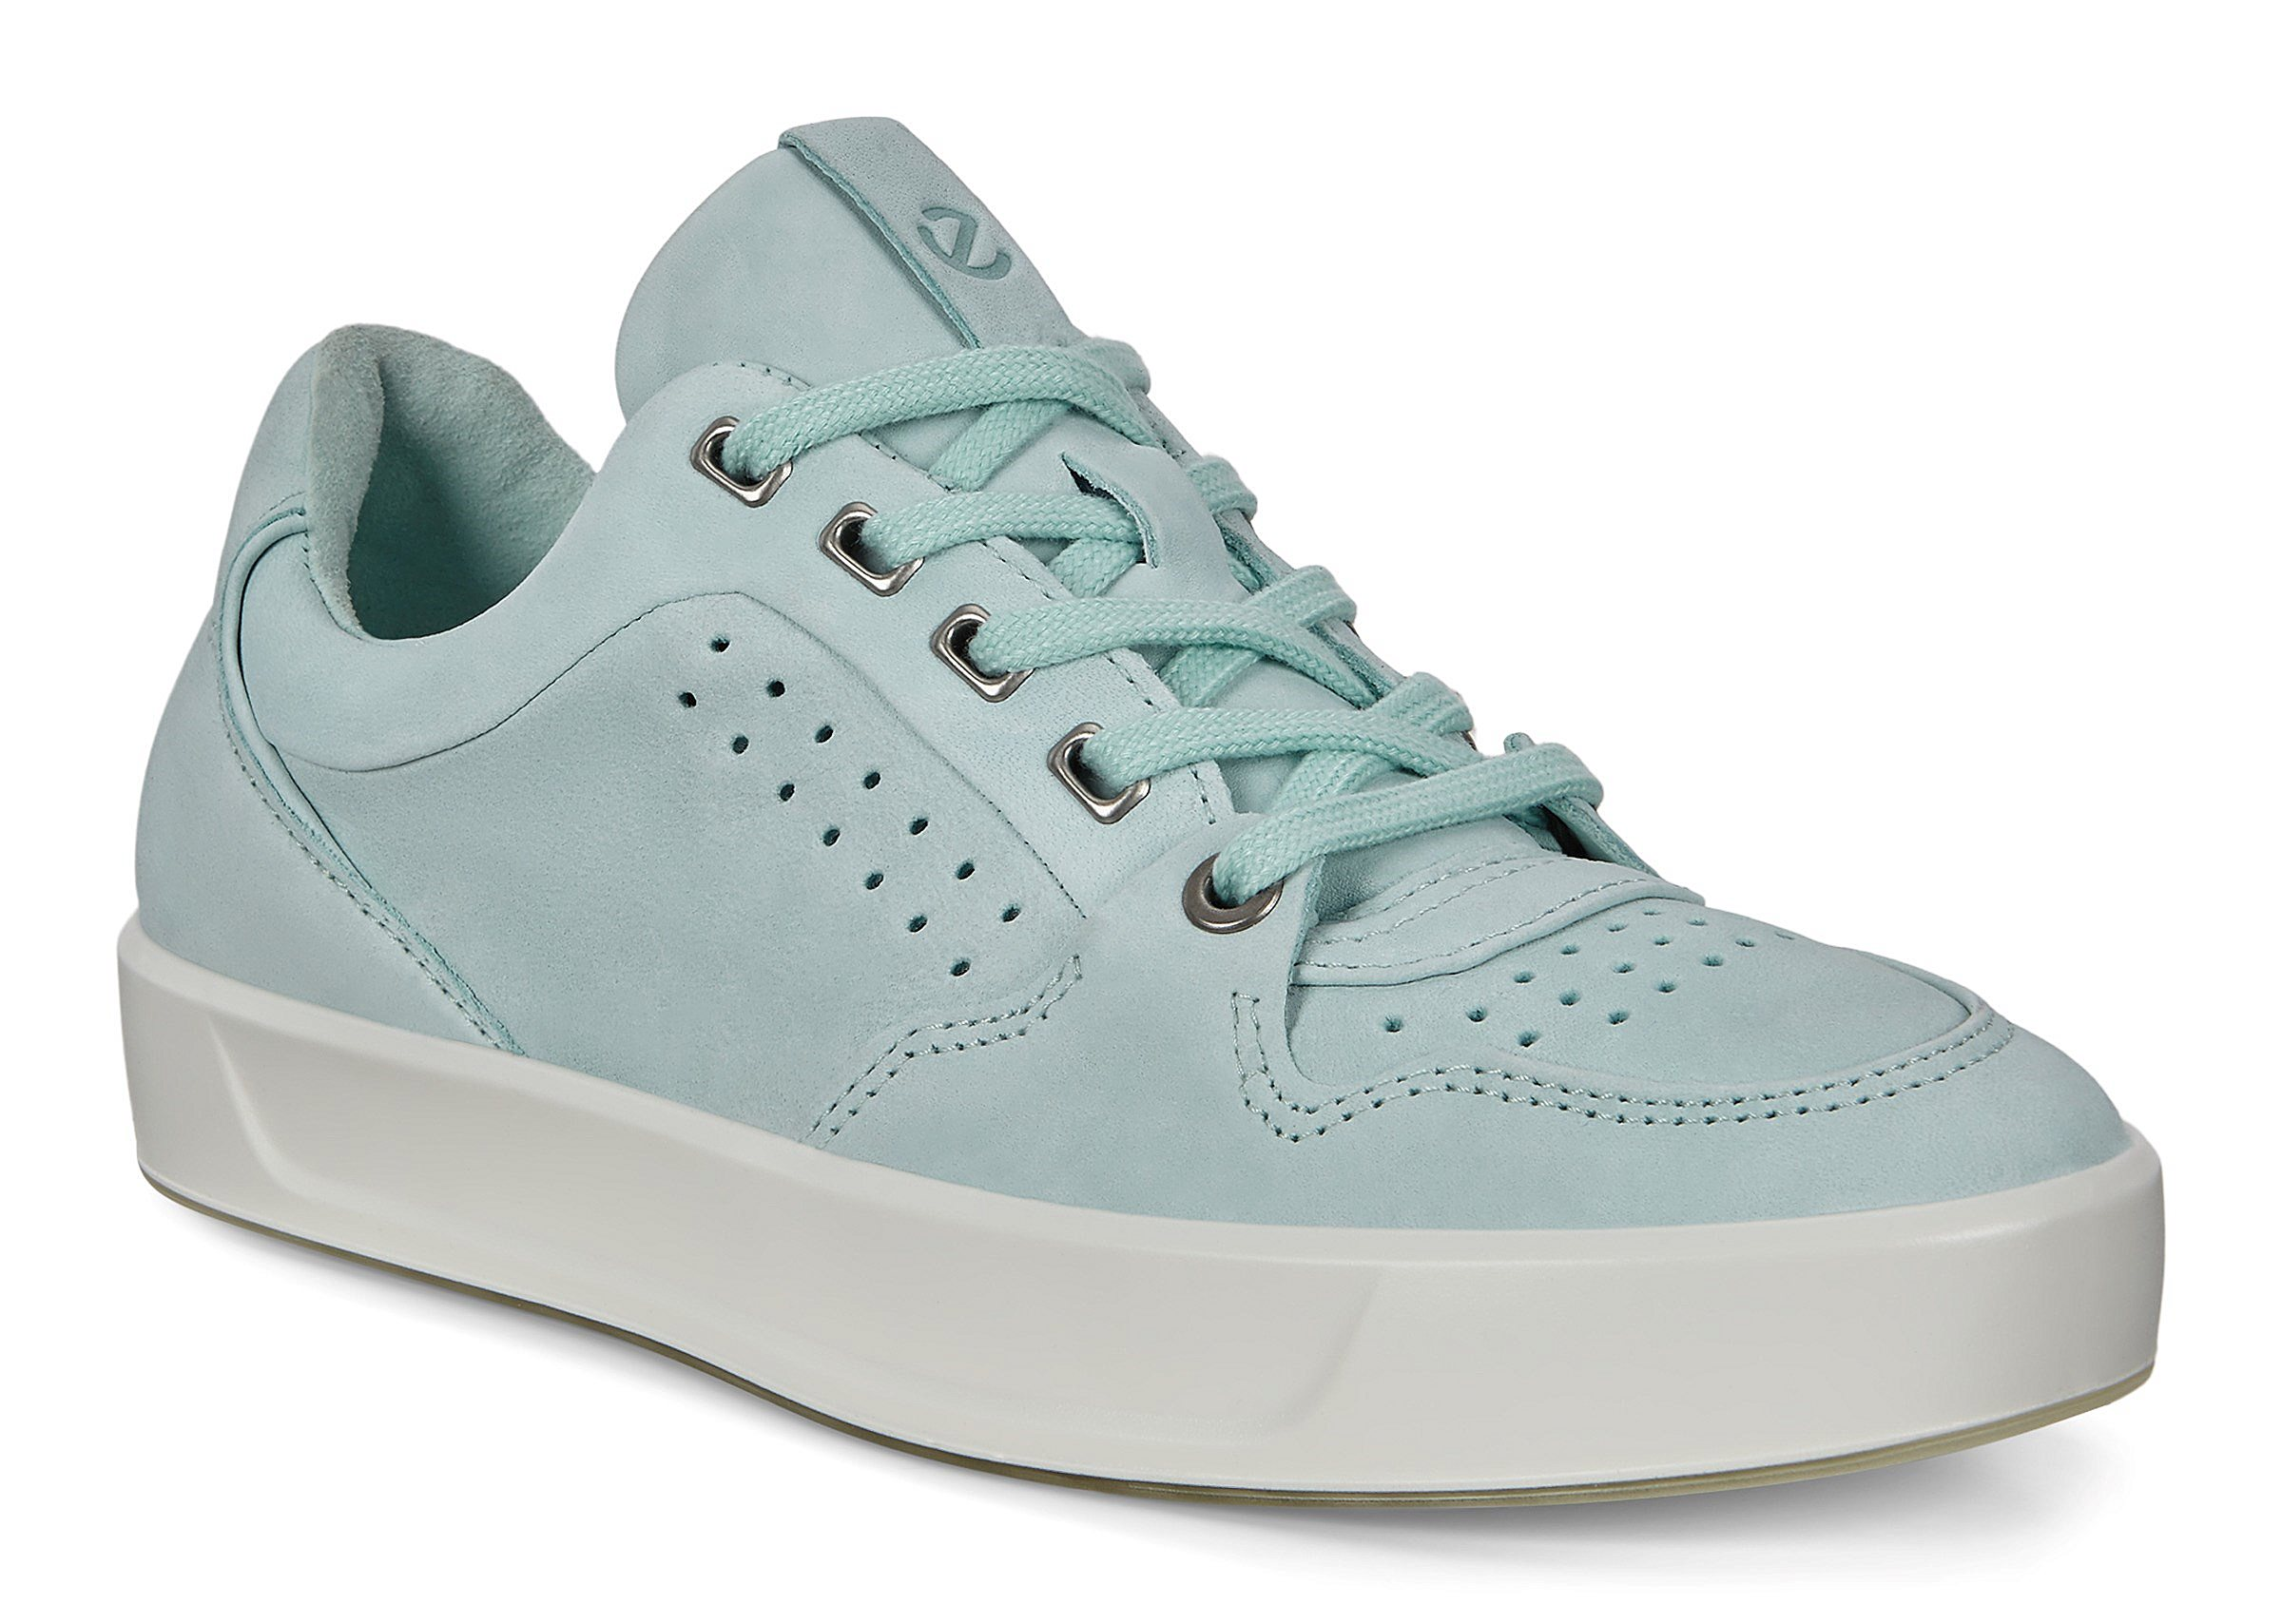 Women's Shoes | Buy from the Official ECCO® Online Store